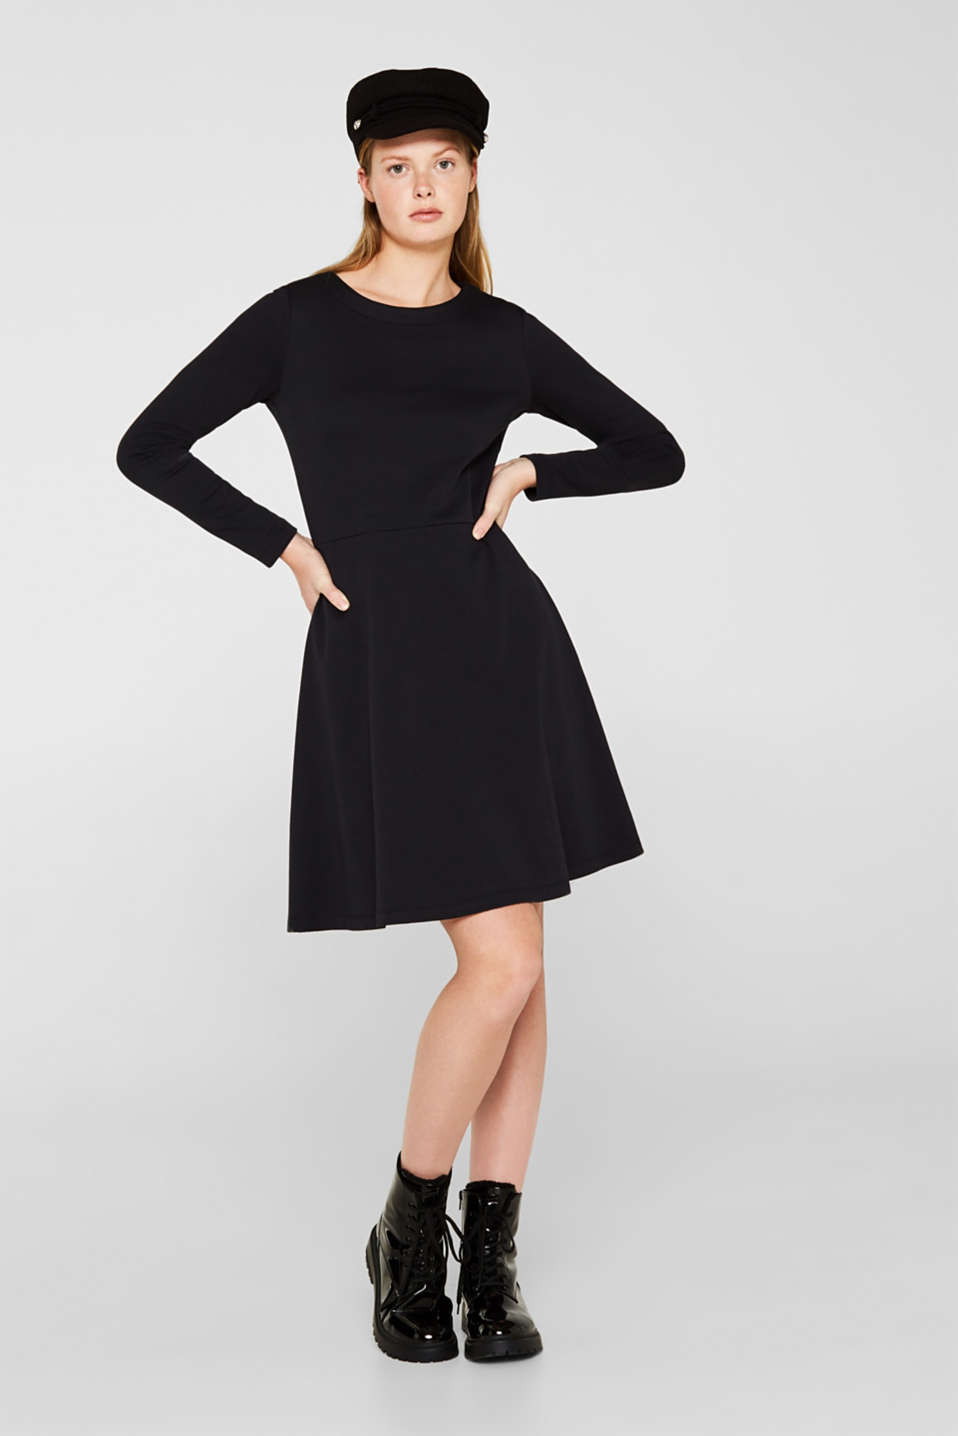 Textured stretch jersey dress, BLACK, detail image number 1